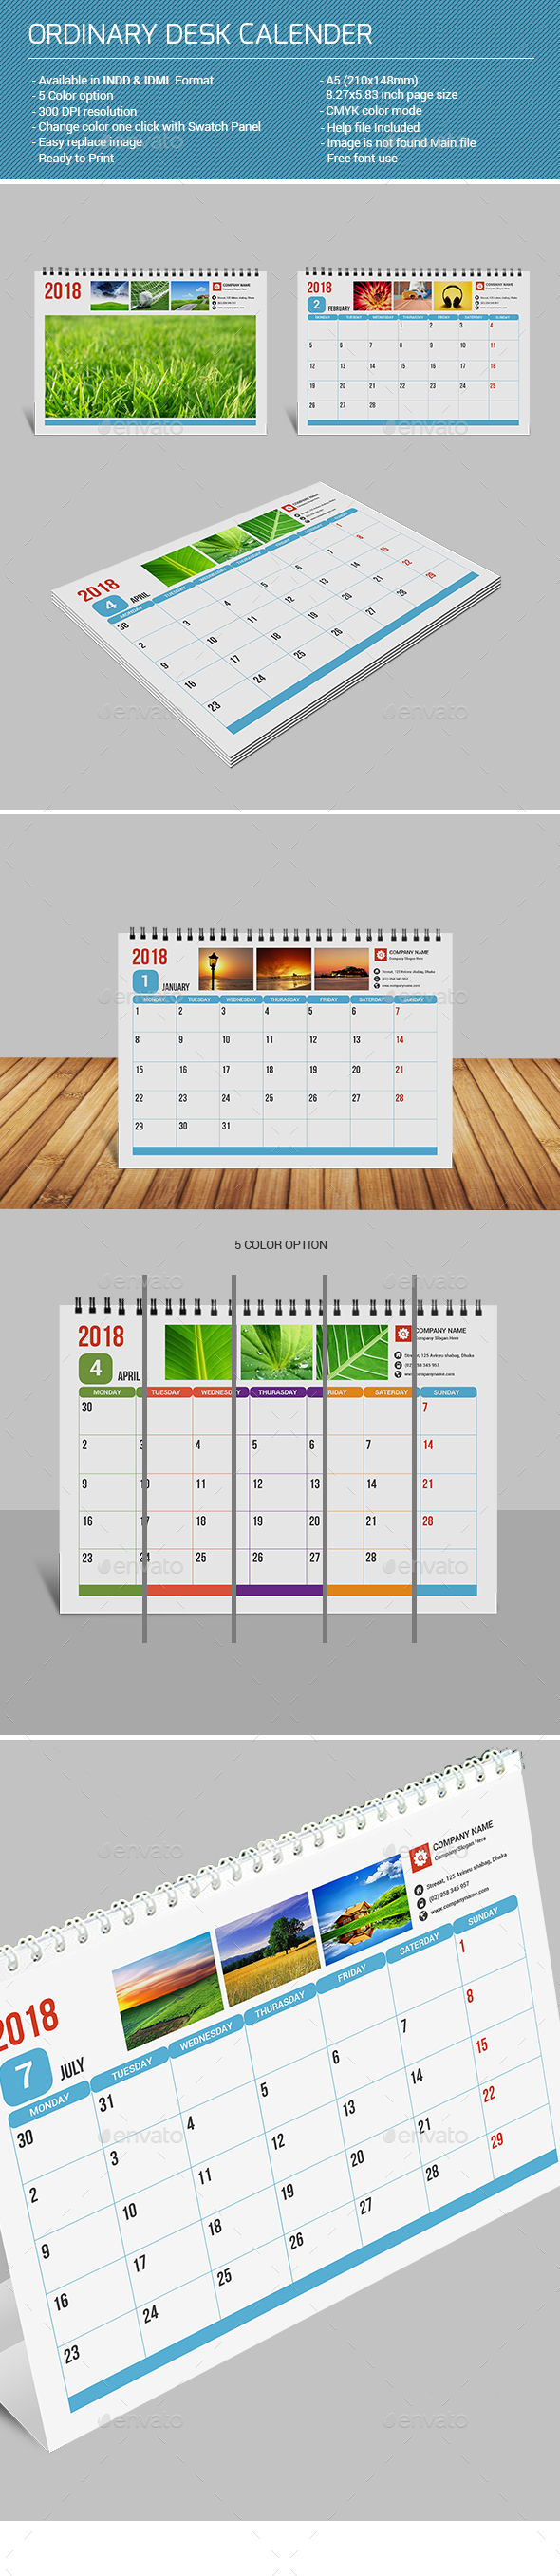 GraphicRiver Ordinary Desk Calendar 21193870